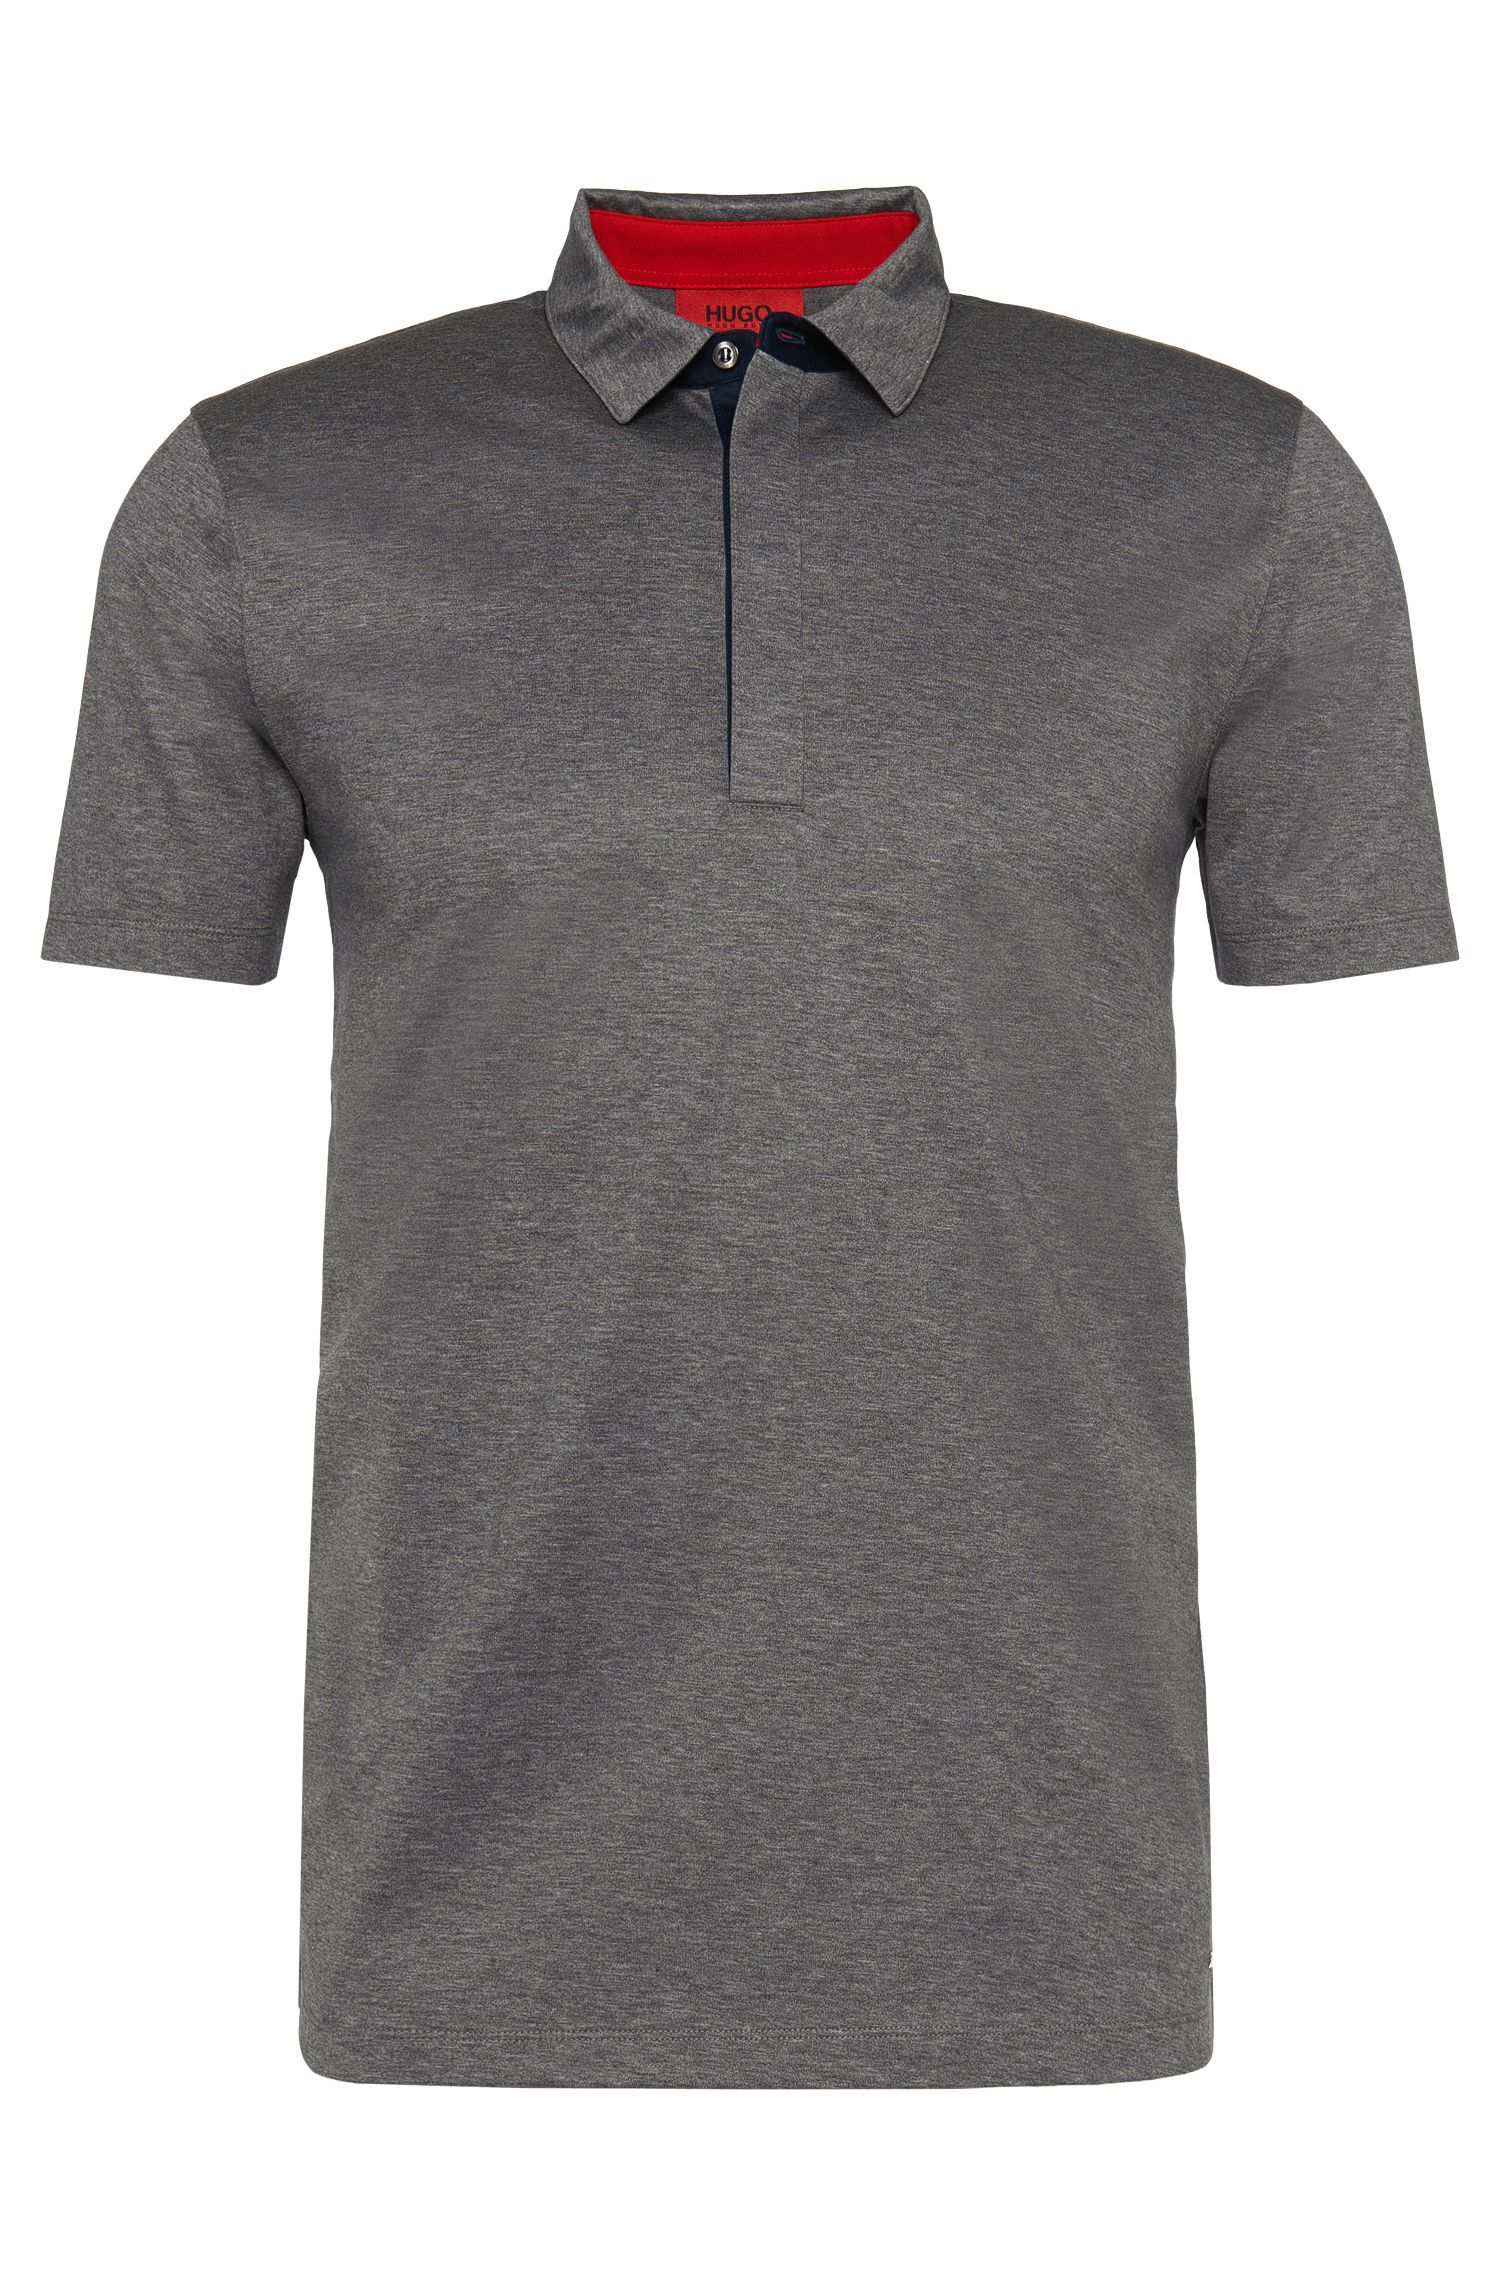 'Dellos' | Slim Fit, Mercerized Cotton Polo